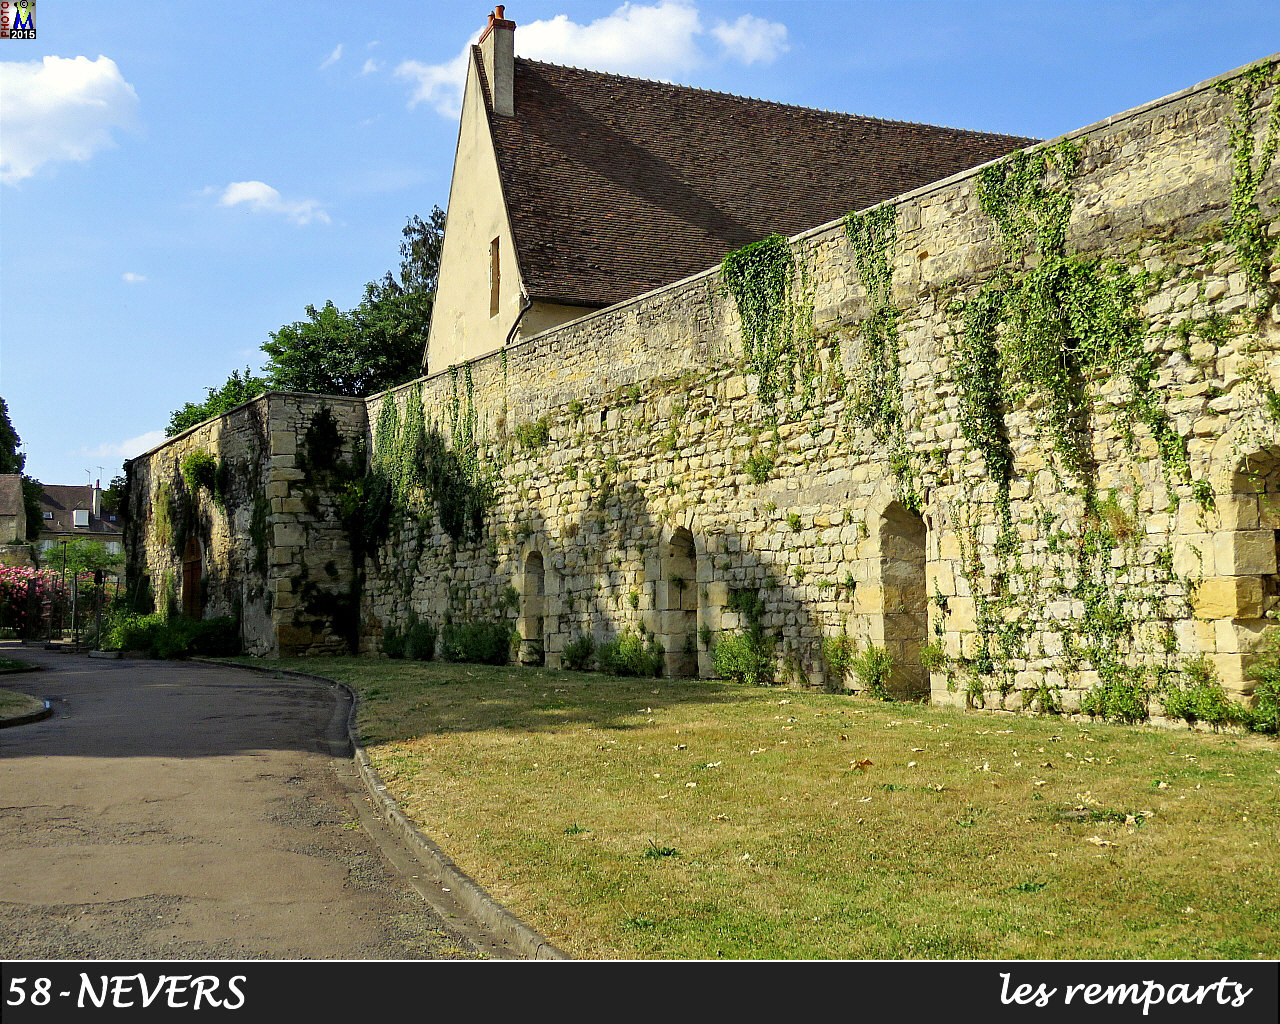 58NEVERS-remparts_100.jpg